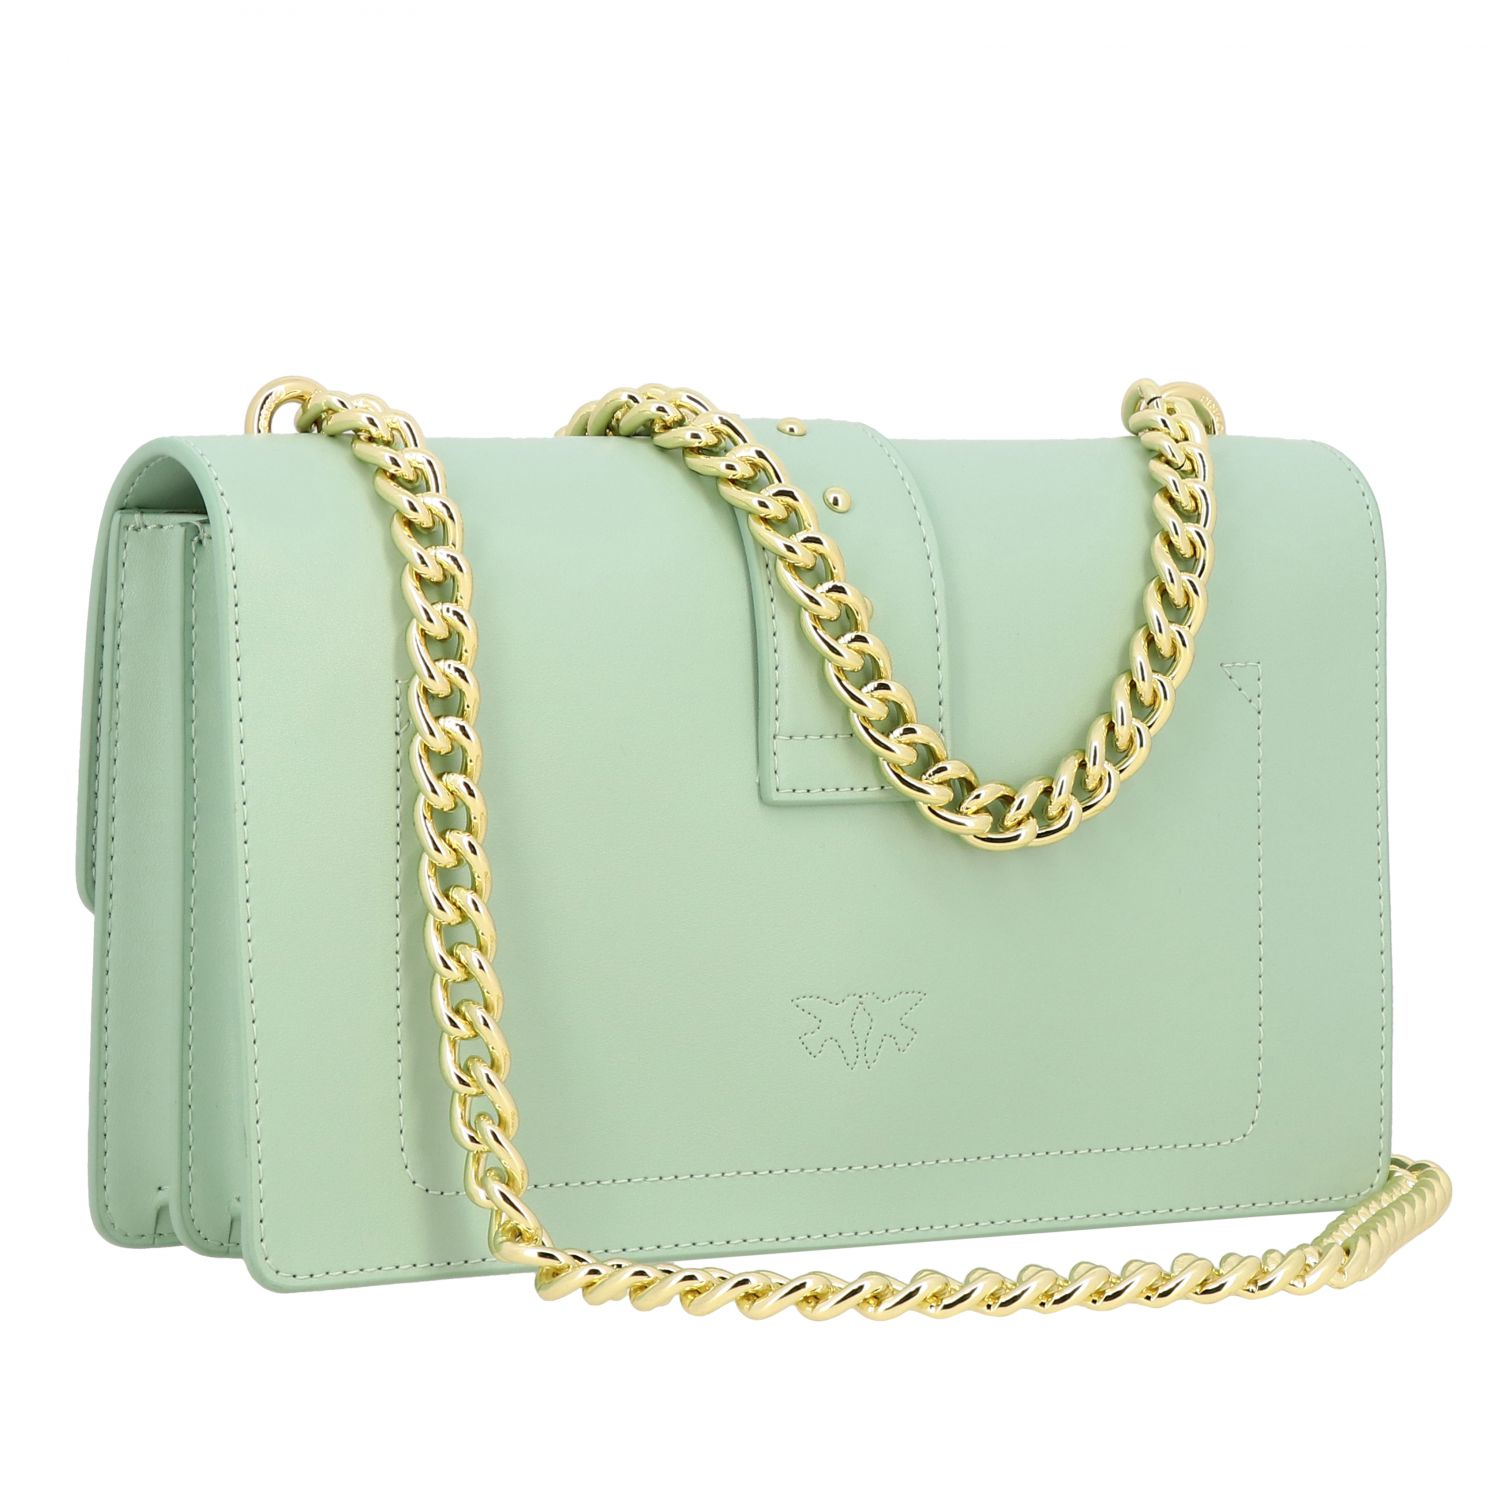 Borsa Love classic simply Pinko in pelle acqua 3